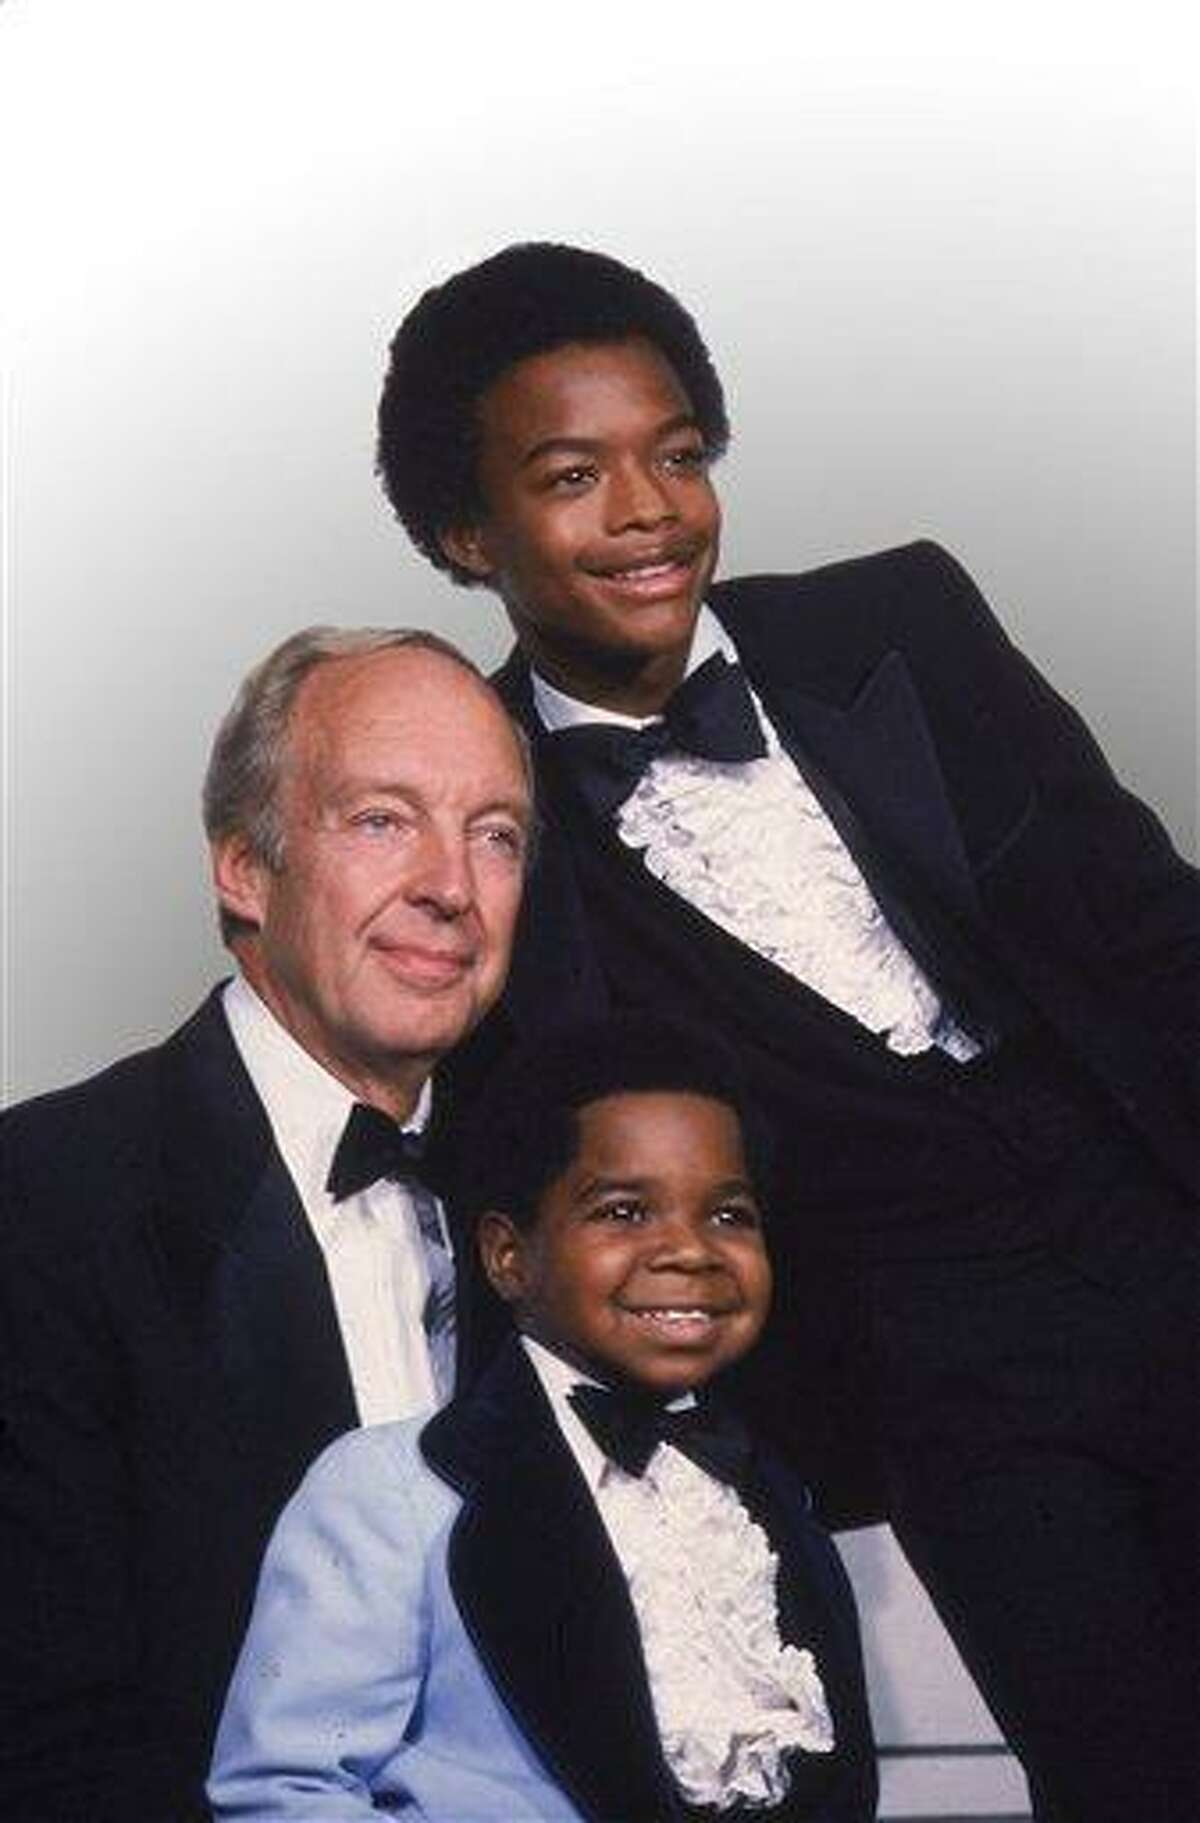 """FILE - This Sept. 13, 1981 file photo shows stars of the television show """"Different Strokes,"""" clockwise from foreground, Gary Coleman, Conrad Bain and Todd Bridges at the Emmy Awards in Los Angeles. Bain, who starred as the kindly white adoptive father of two young African-American brothers in the TV sitcom """"Diff'rent Strokes,"""" died of natural causes, Monday, Jan. 14, 2013, at his home in Livermore, Calif. He was 89. (AP Photo, file)"""